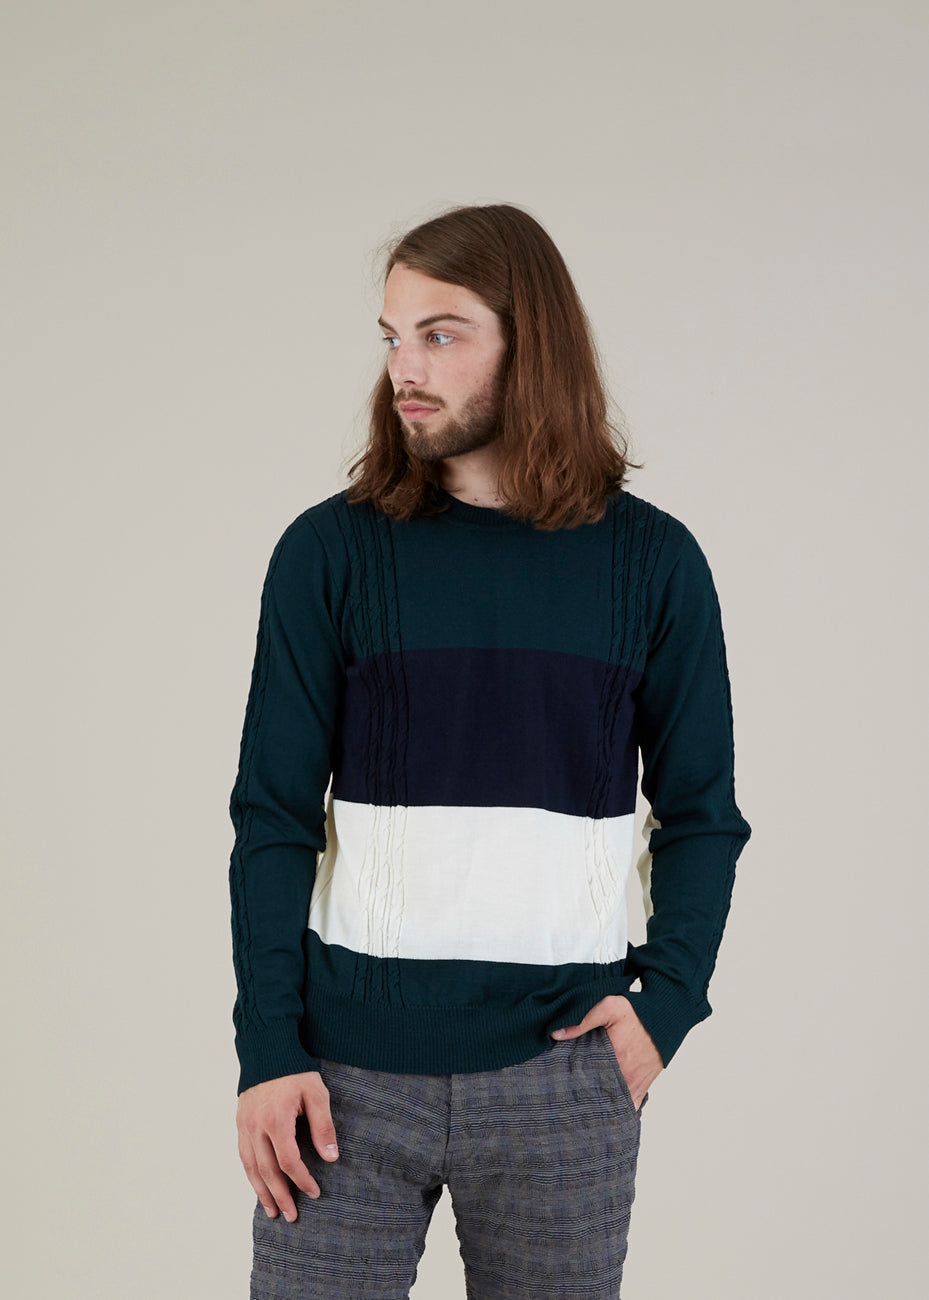 Commune de Paris Minimes Knit Sweater